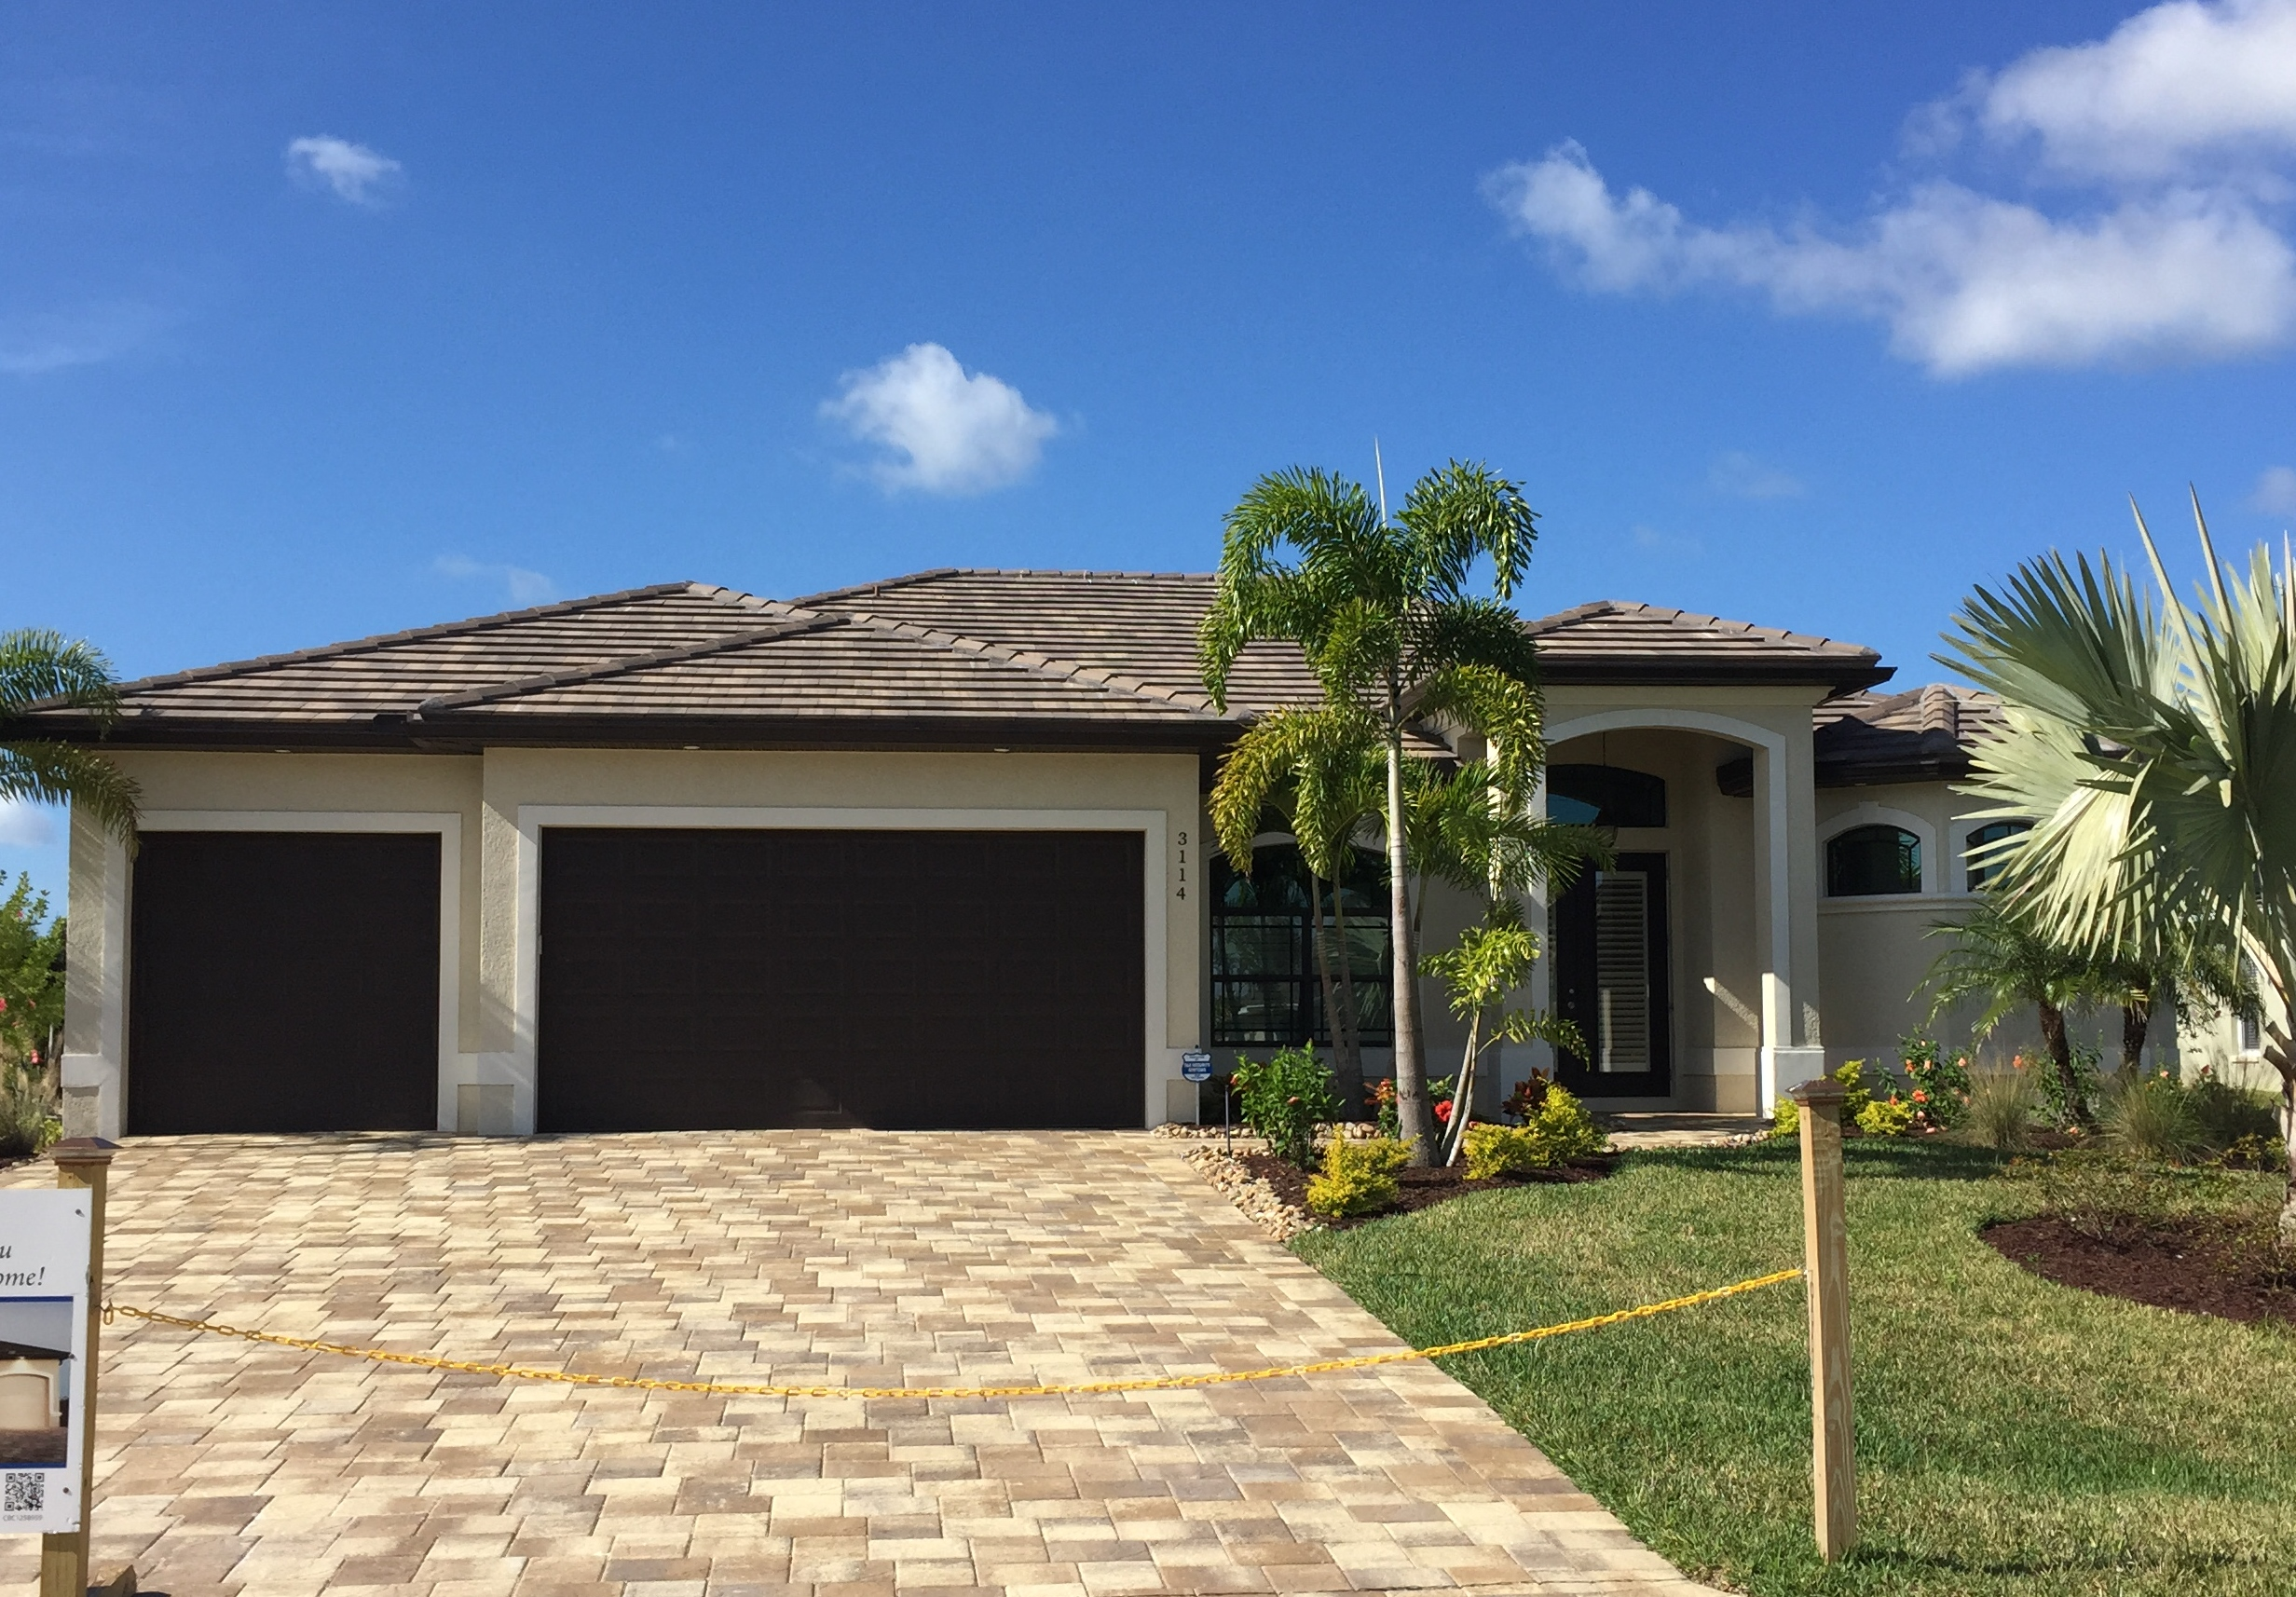 New homes for sale in cape coral fl Pics of new homes